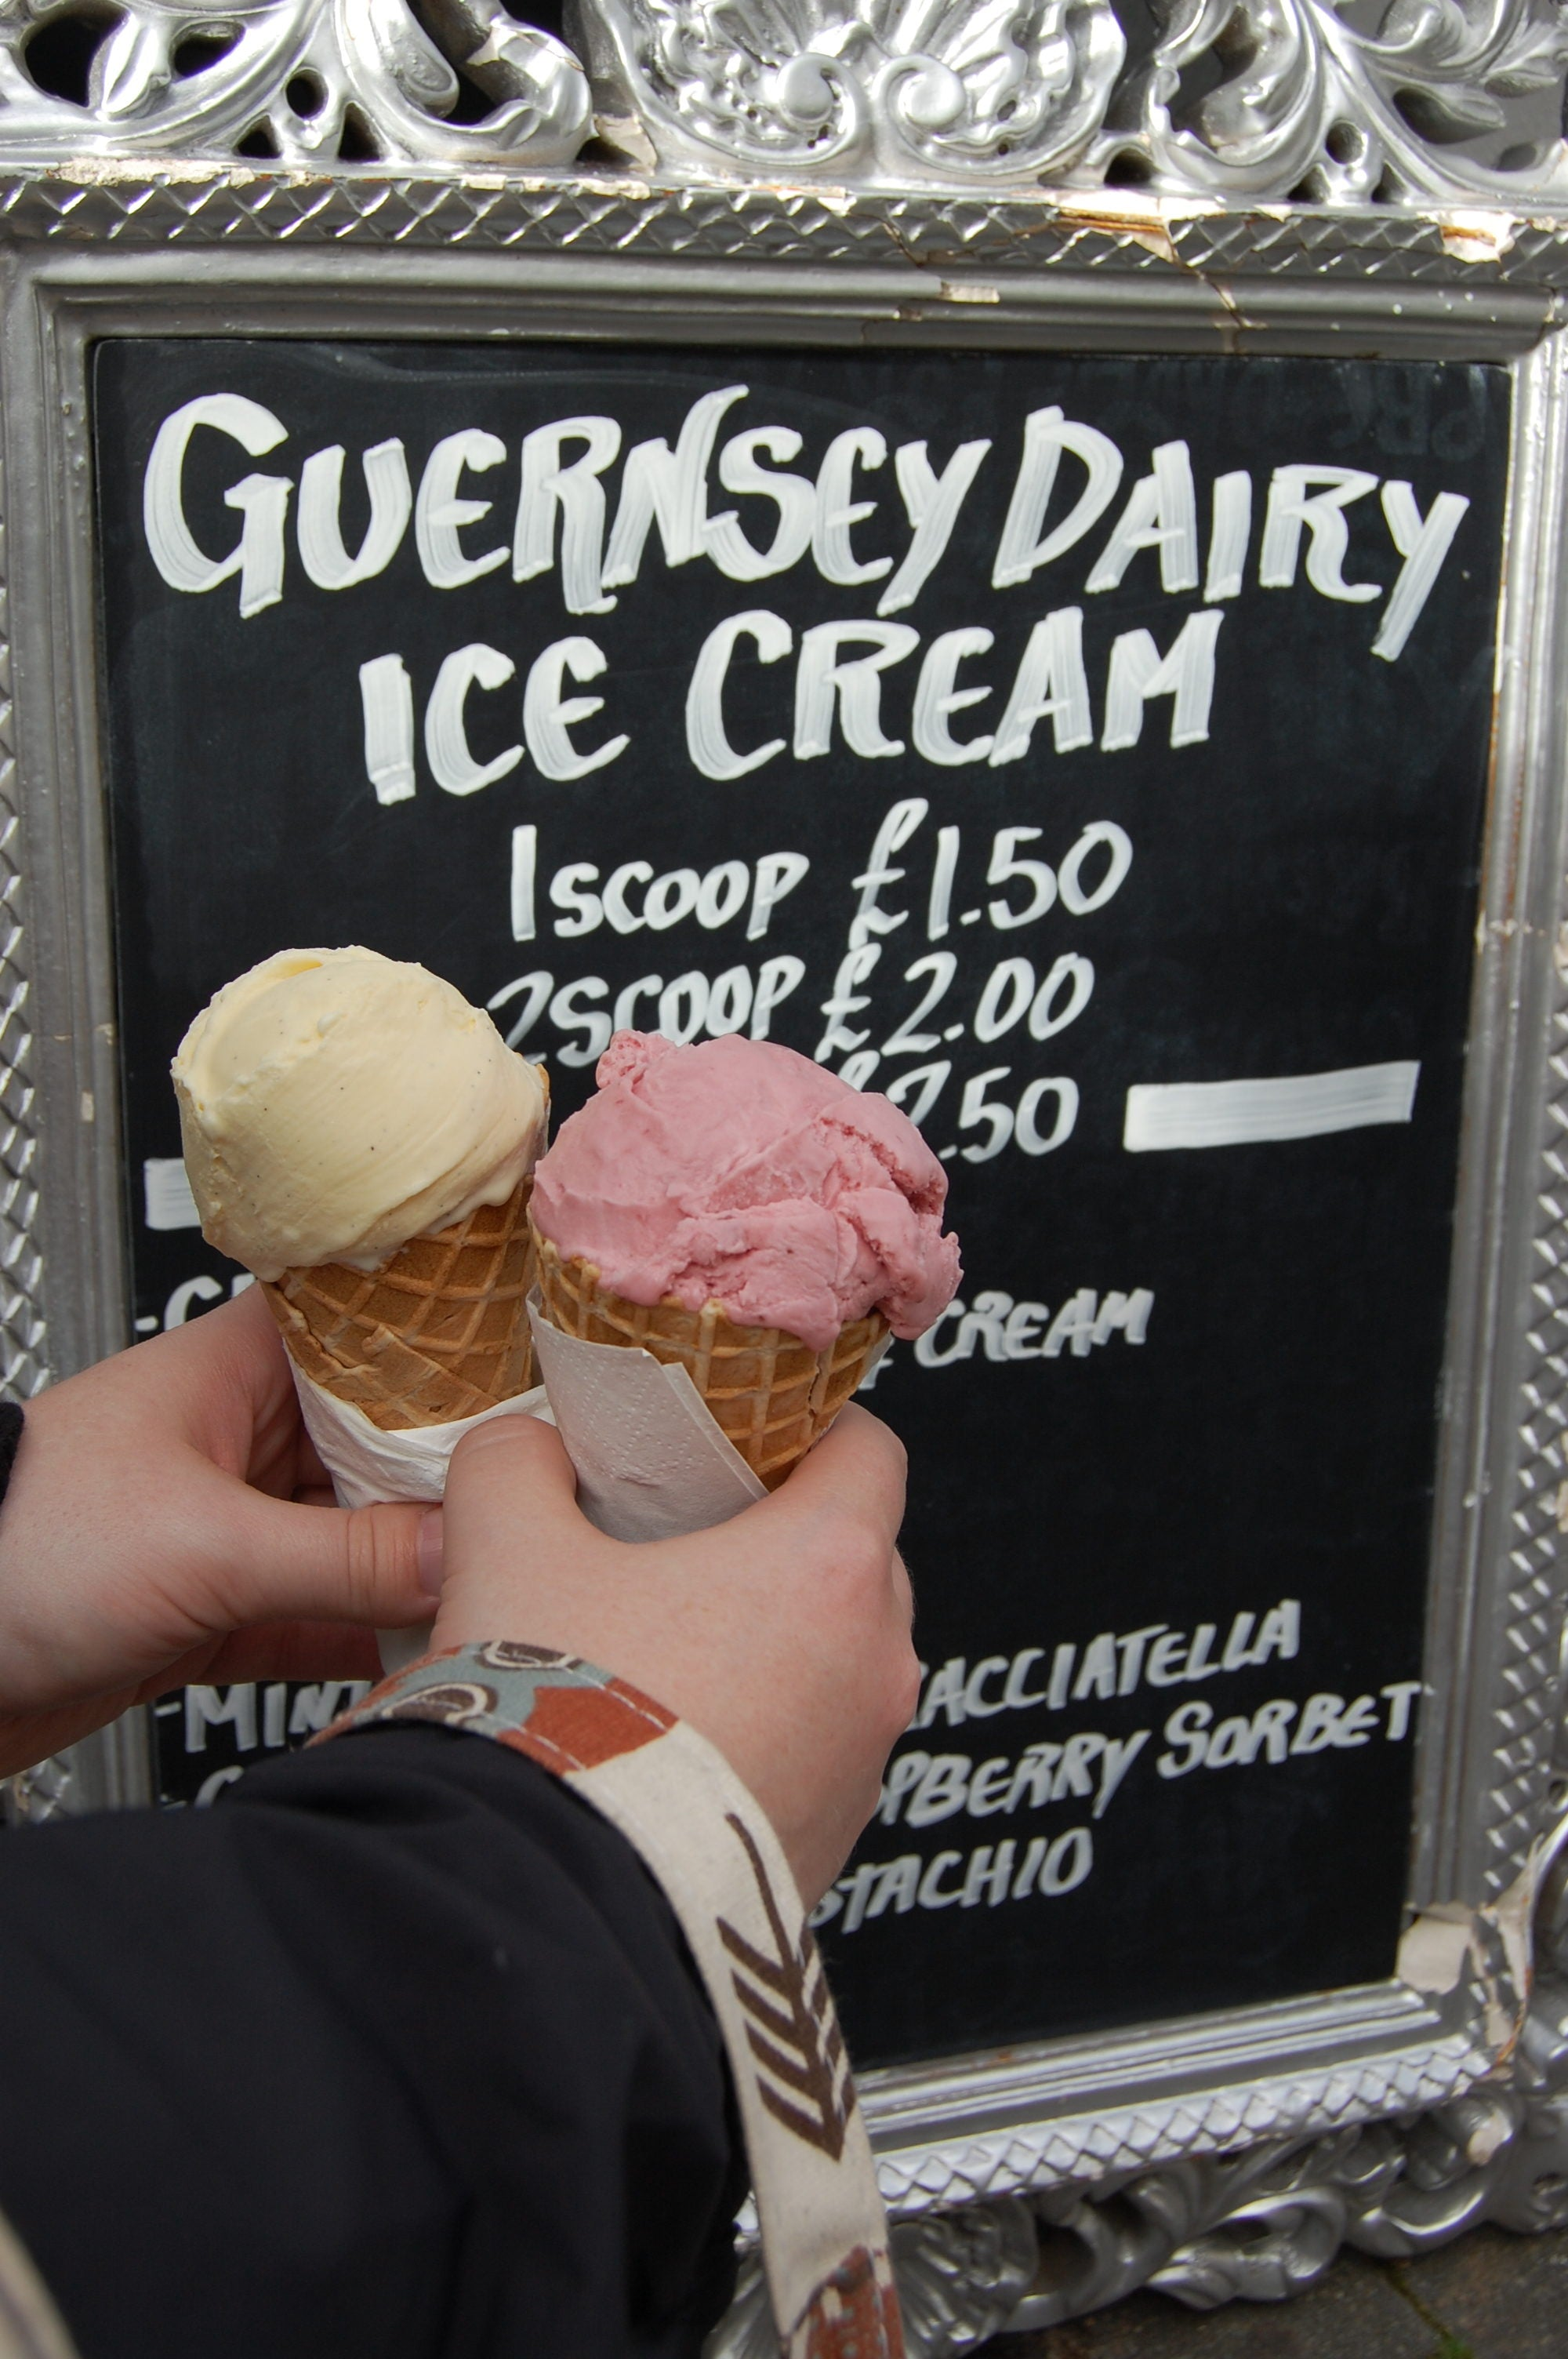 literary travel, Guernsey ice cream, ice cream in front of sign, Guernsey cow